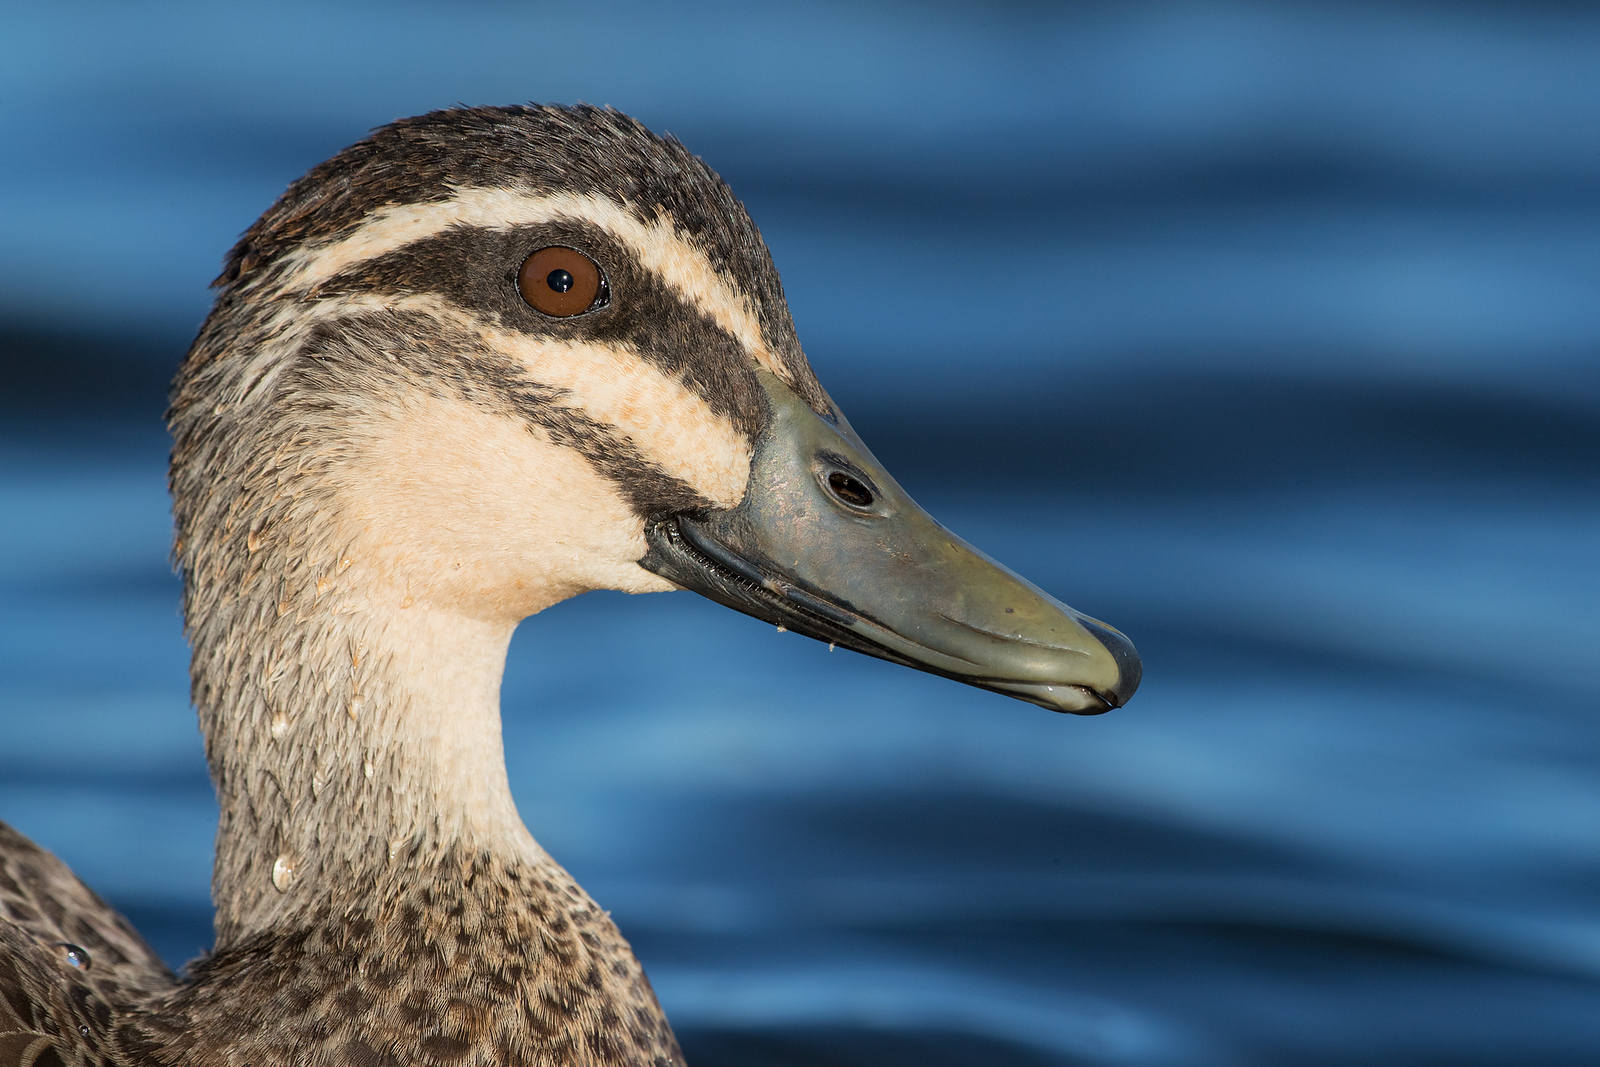 Pacific Black Duck portrait